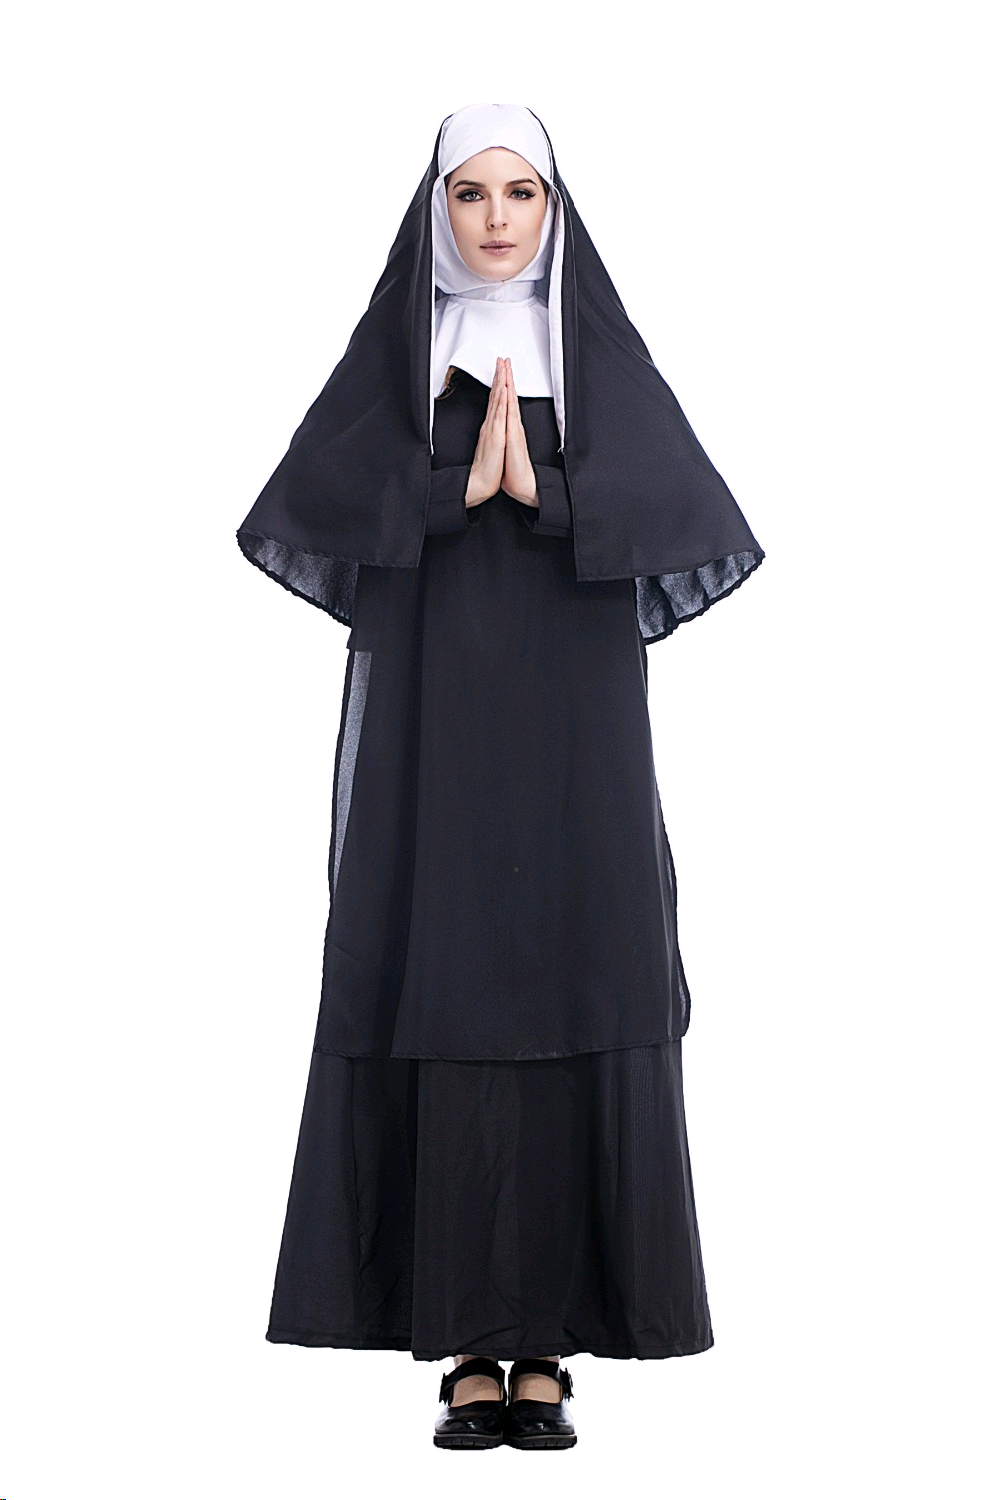 Halloween Costumes The Virgin Mary Nun Costume Robe Clothing Headscarf Costumes Suit For Women Cosplay